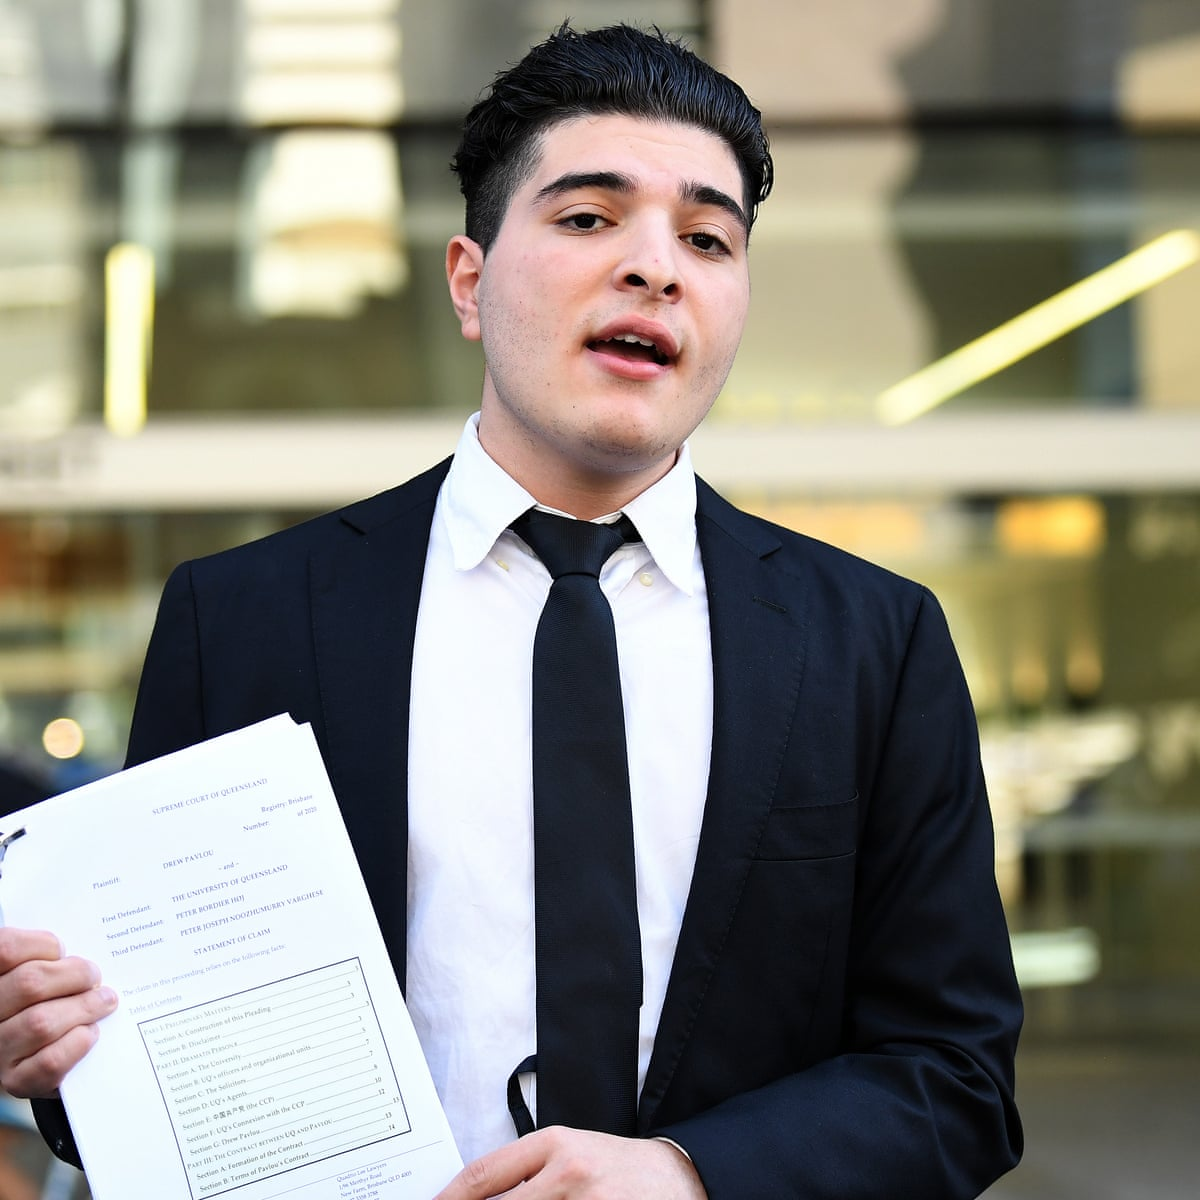 Queensland Student Drew Pavlou S Suspension Reduced But Will Remain Out Of University Until 2021 Australian Education The Guardian